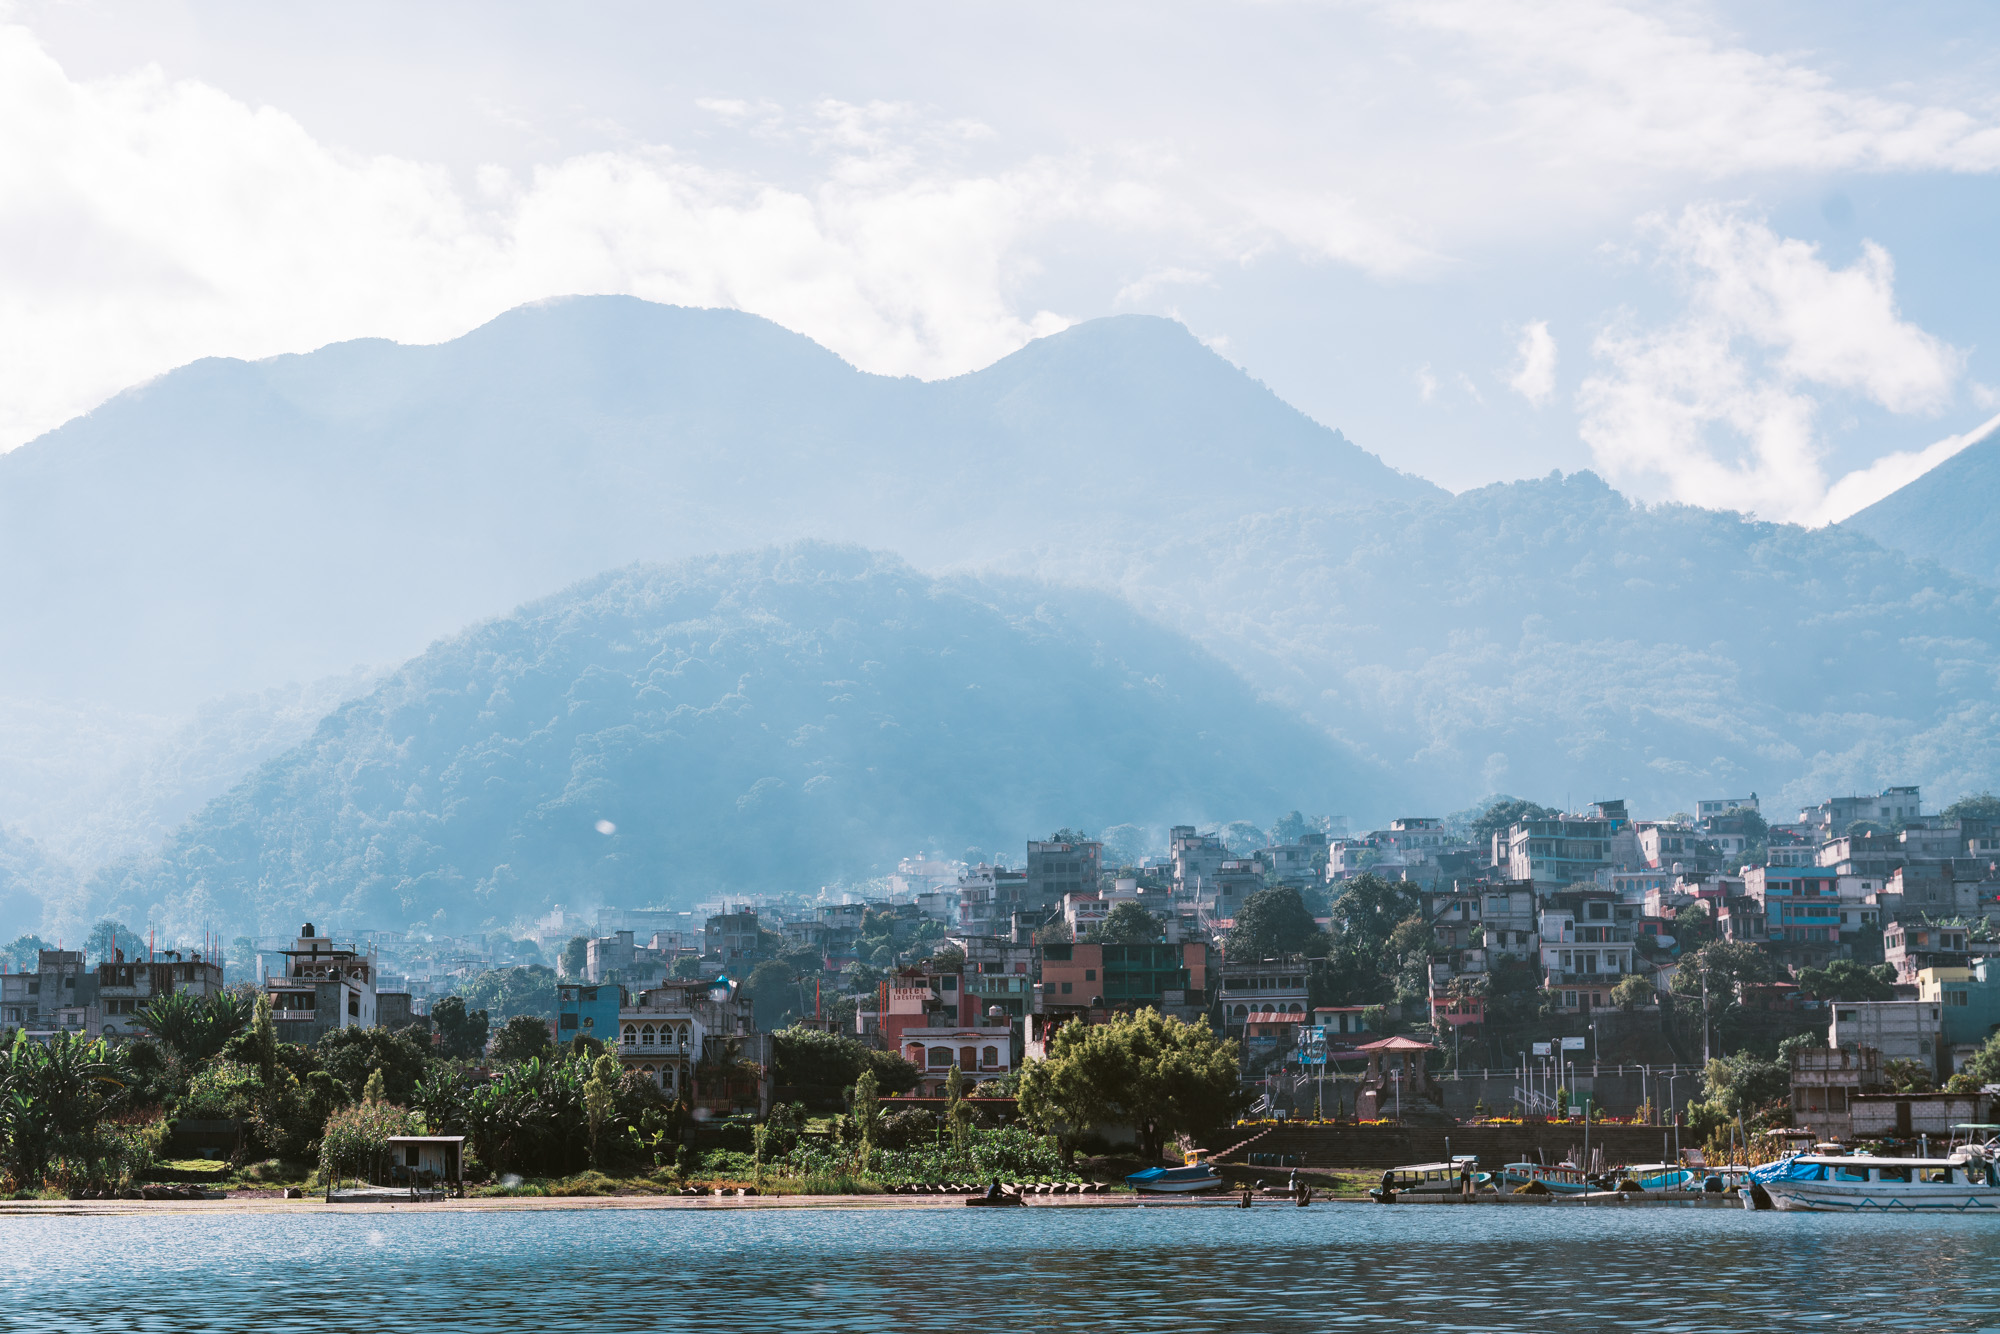 View from the water towards the city Santiago at Lake atitlan